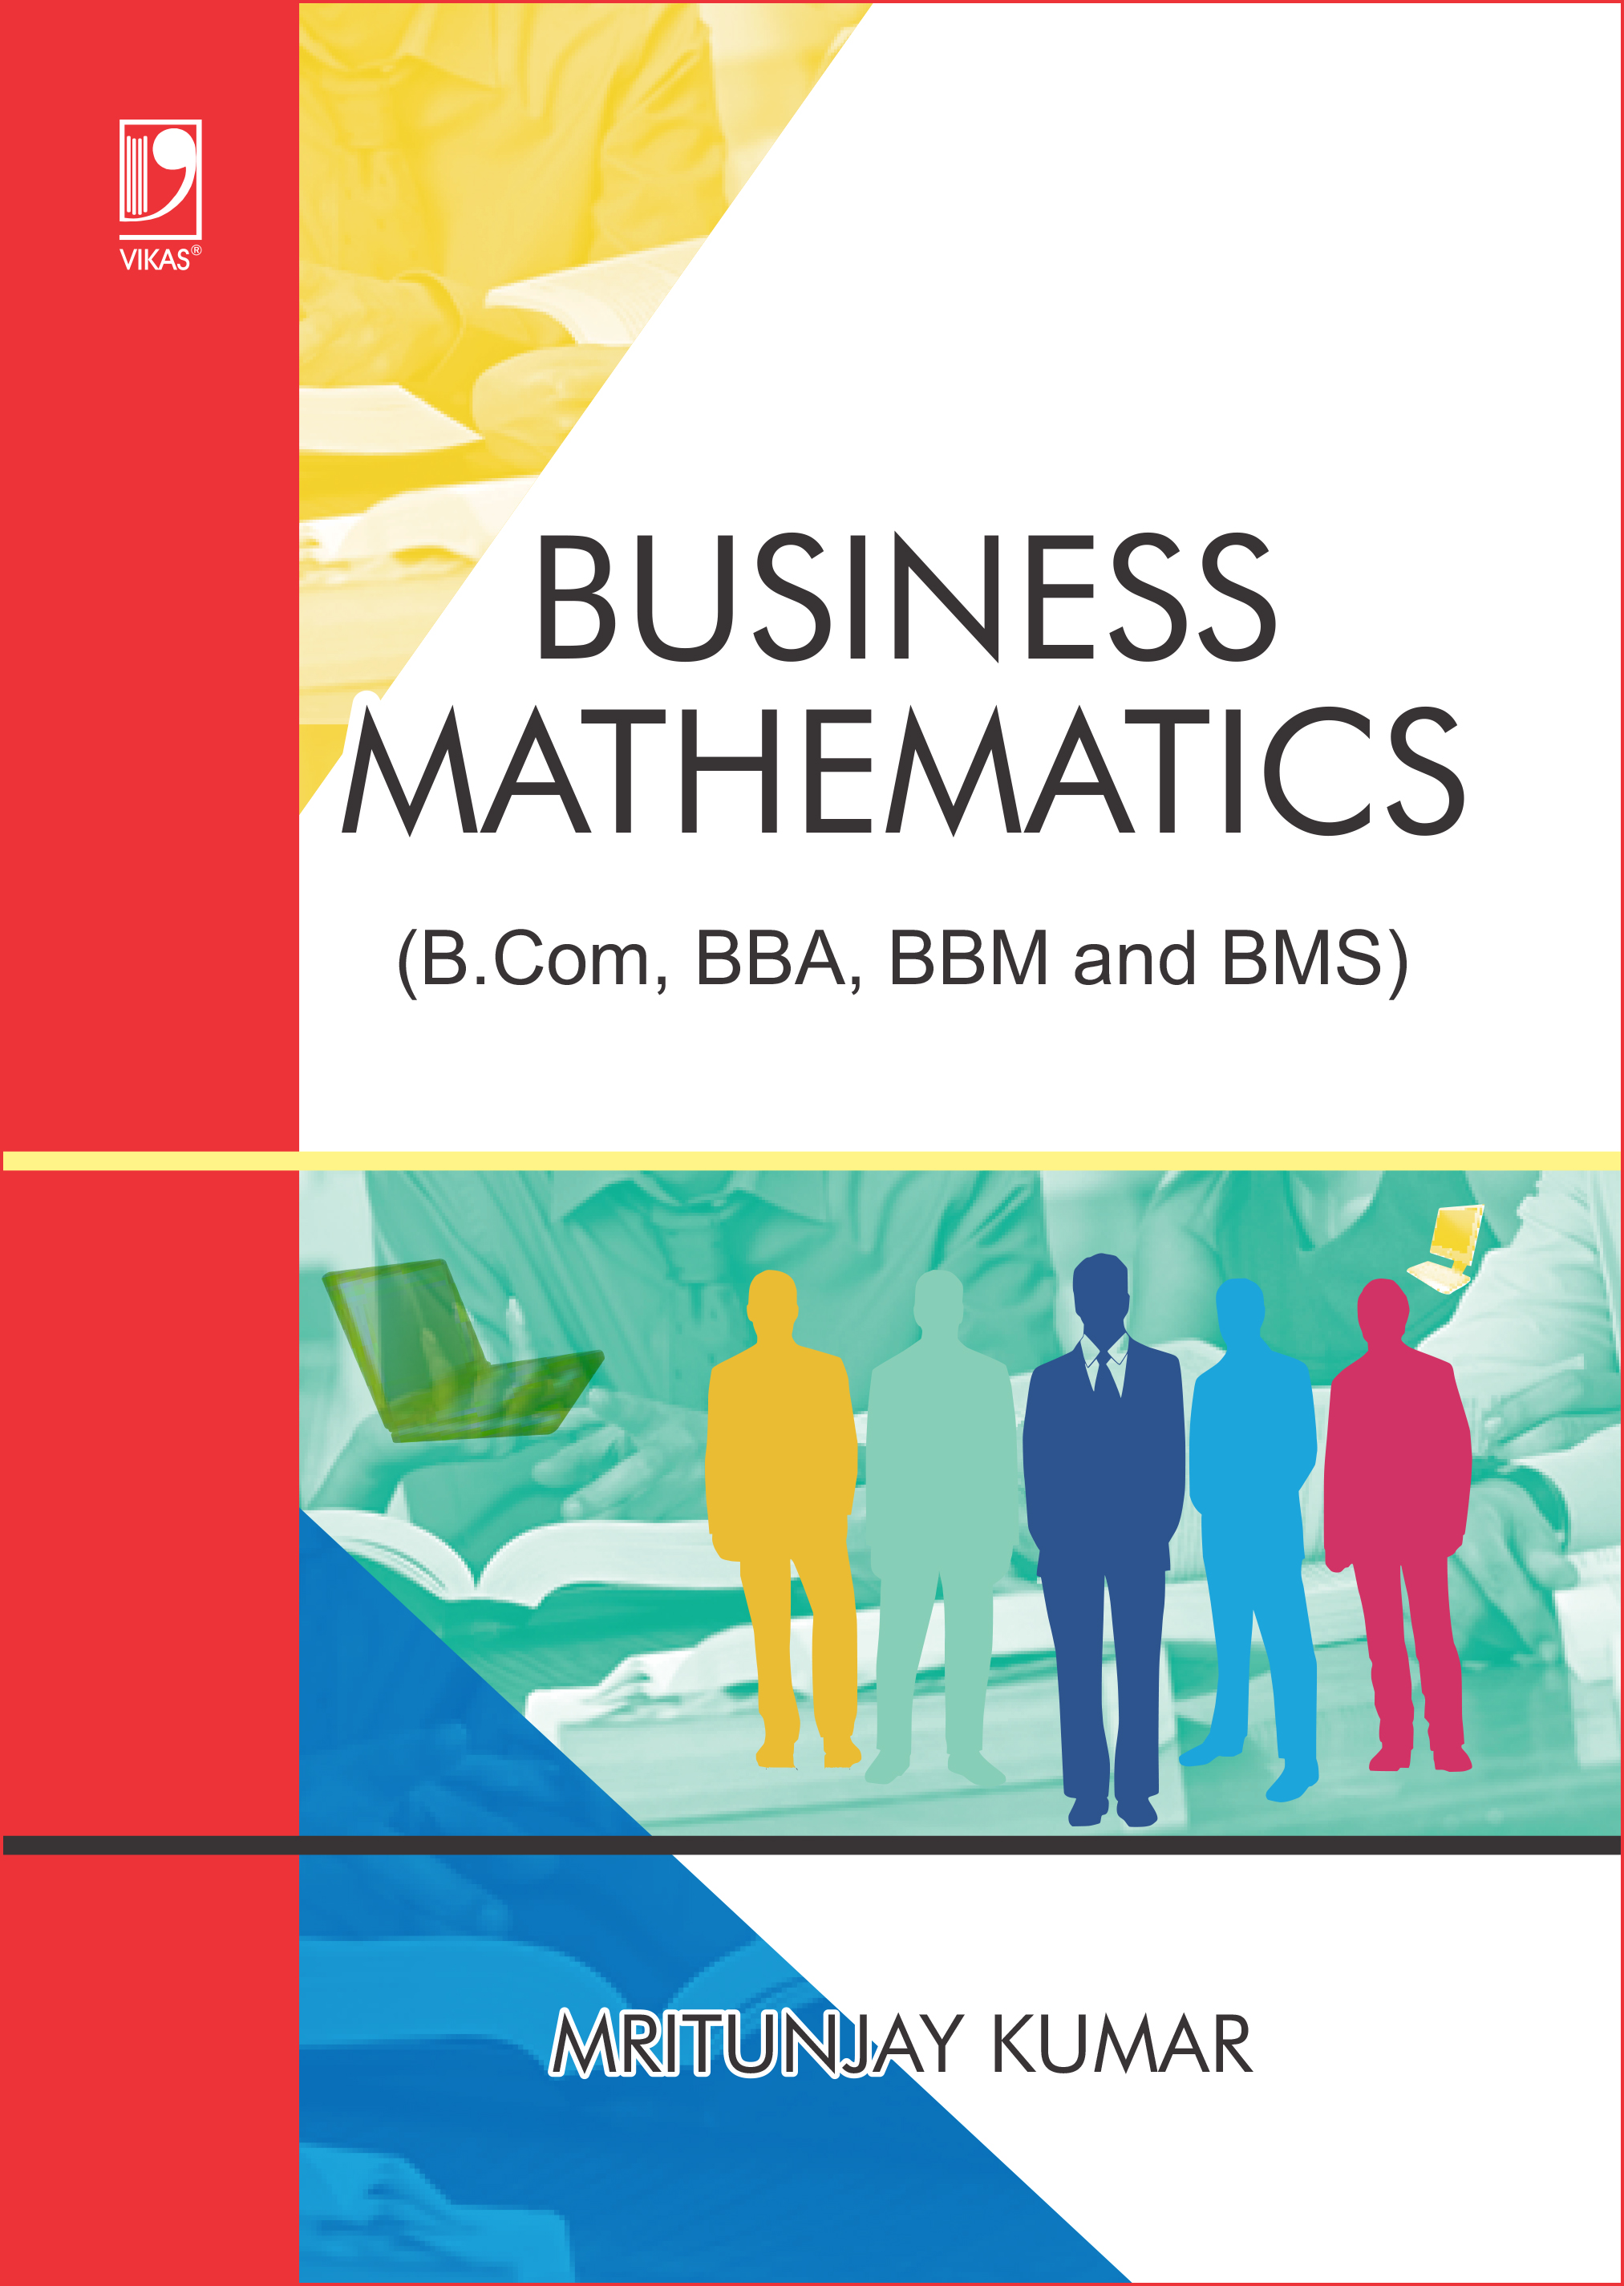 BUSINESS MATHEMATICS: (FOR B.COM, BBA, BBM AND BMS)